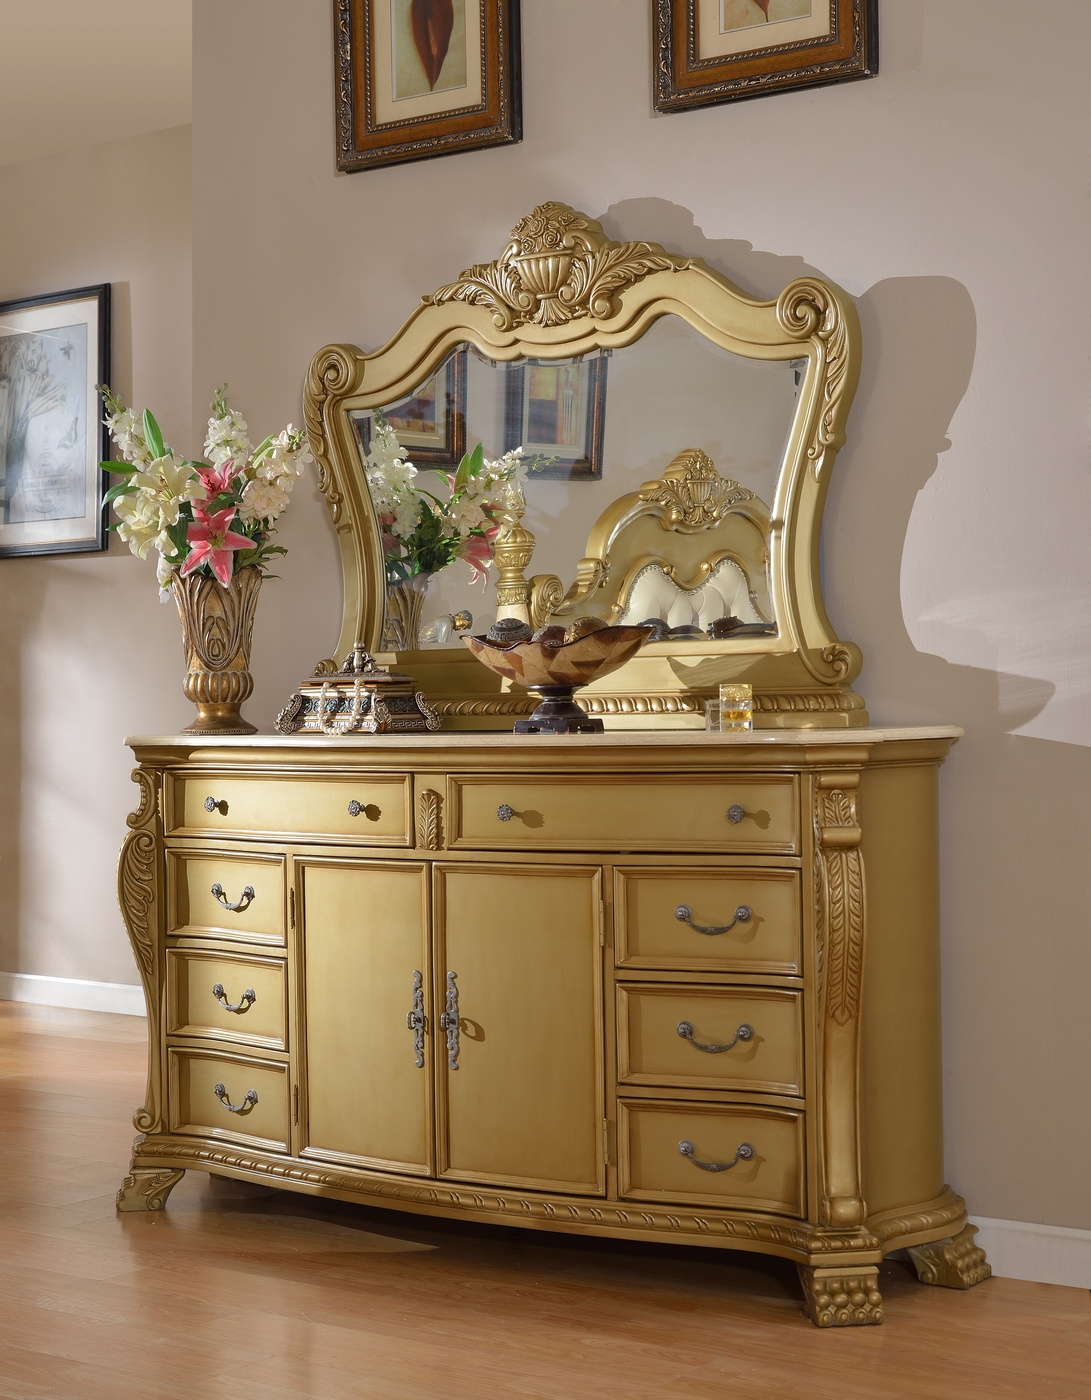 Lavish low post king 4 piece bedroom set in gold with for 4 piece bedroom furniture set